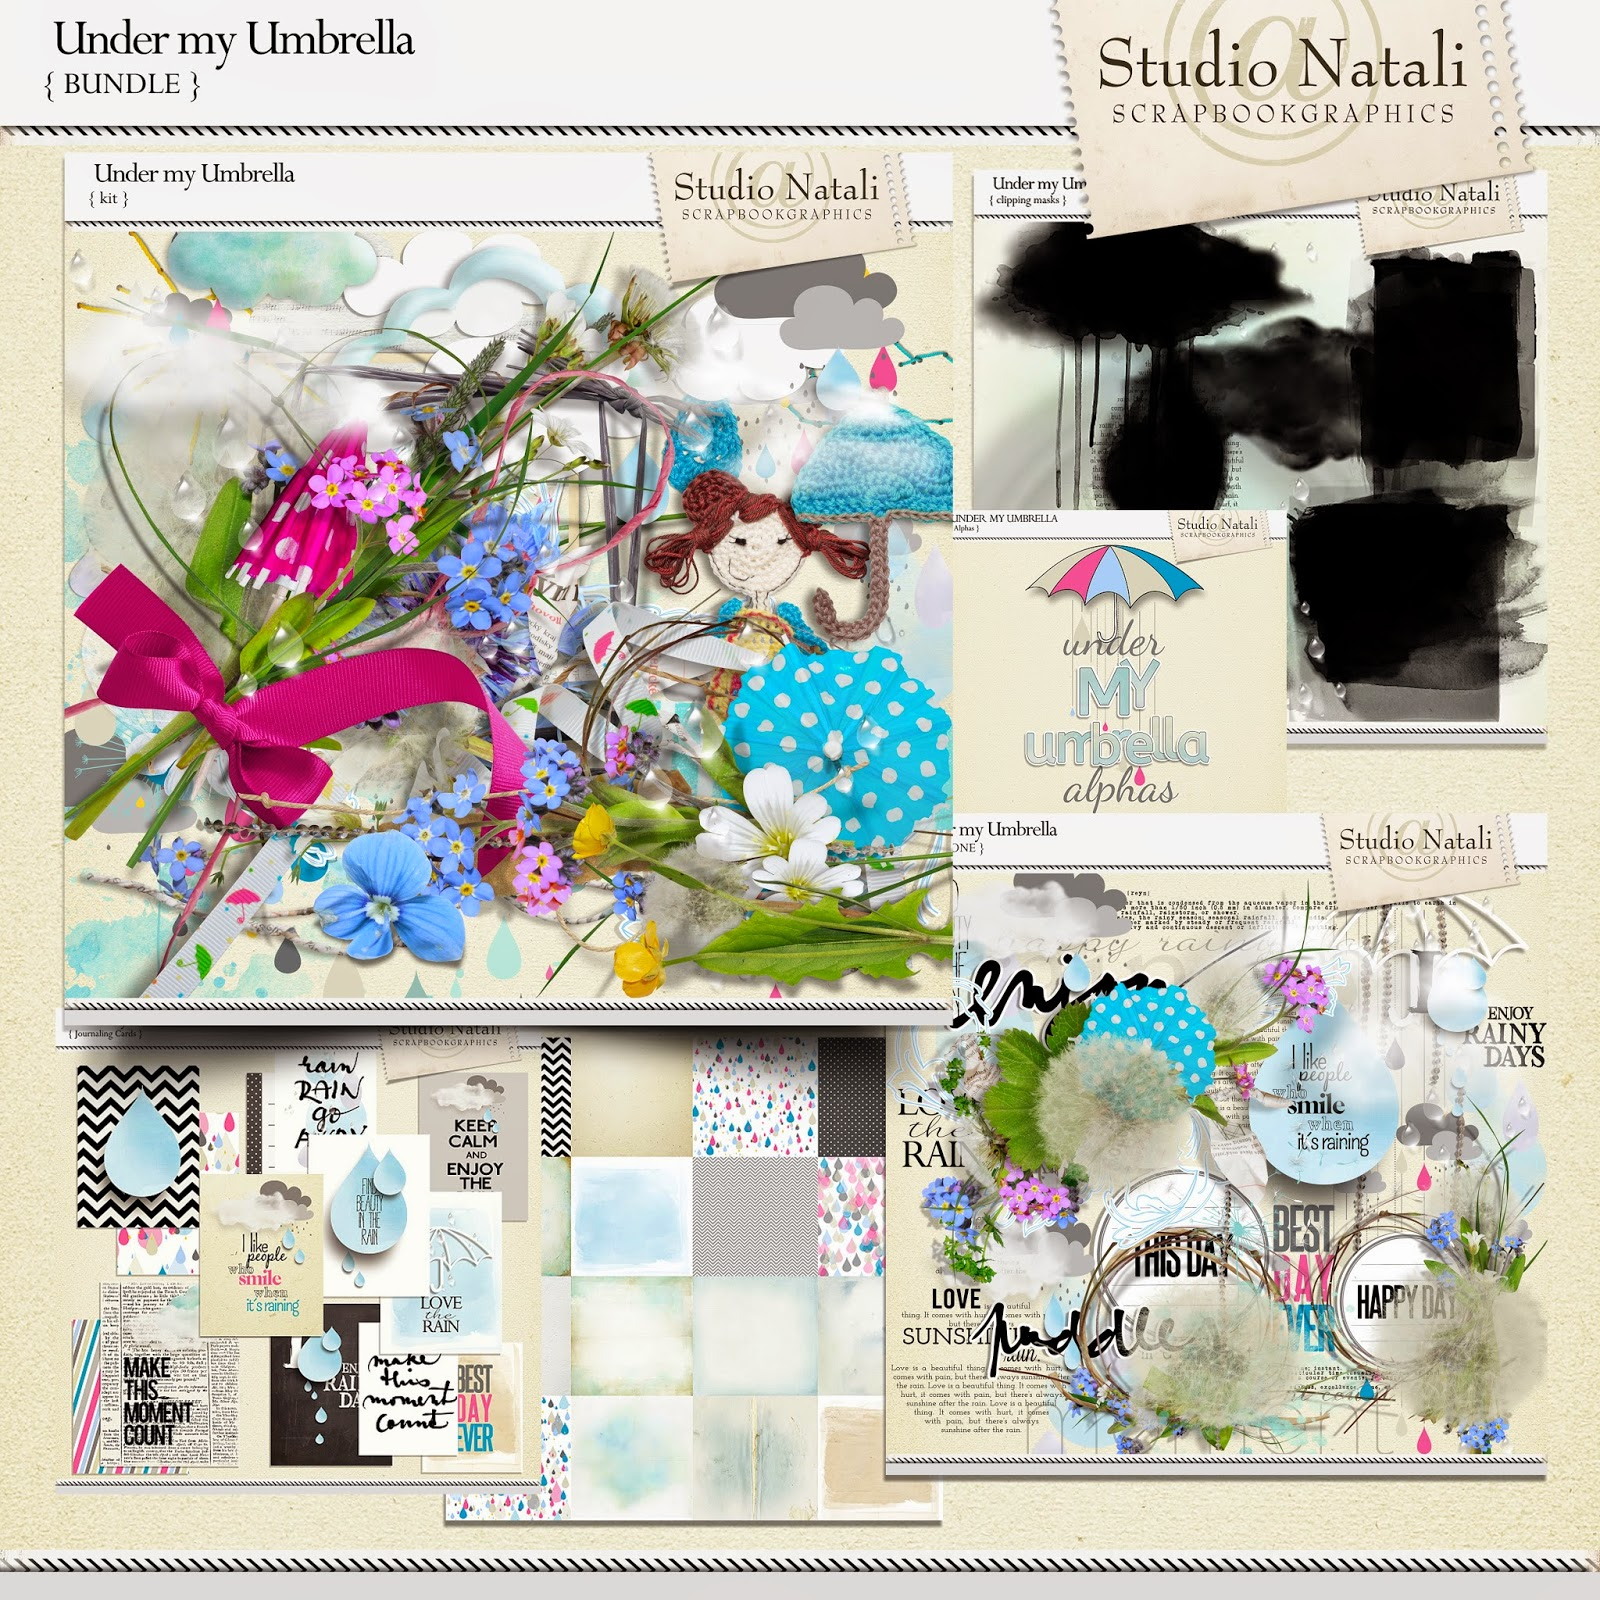 http://shop.scrapbookgraphics.com/Under-my-Umbrella-Bundle.html